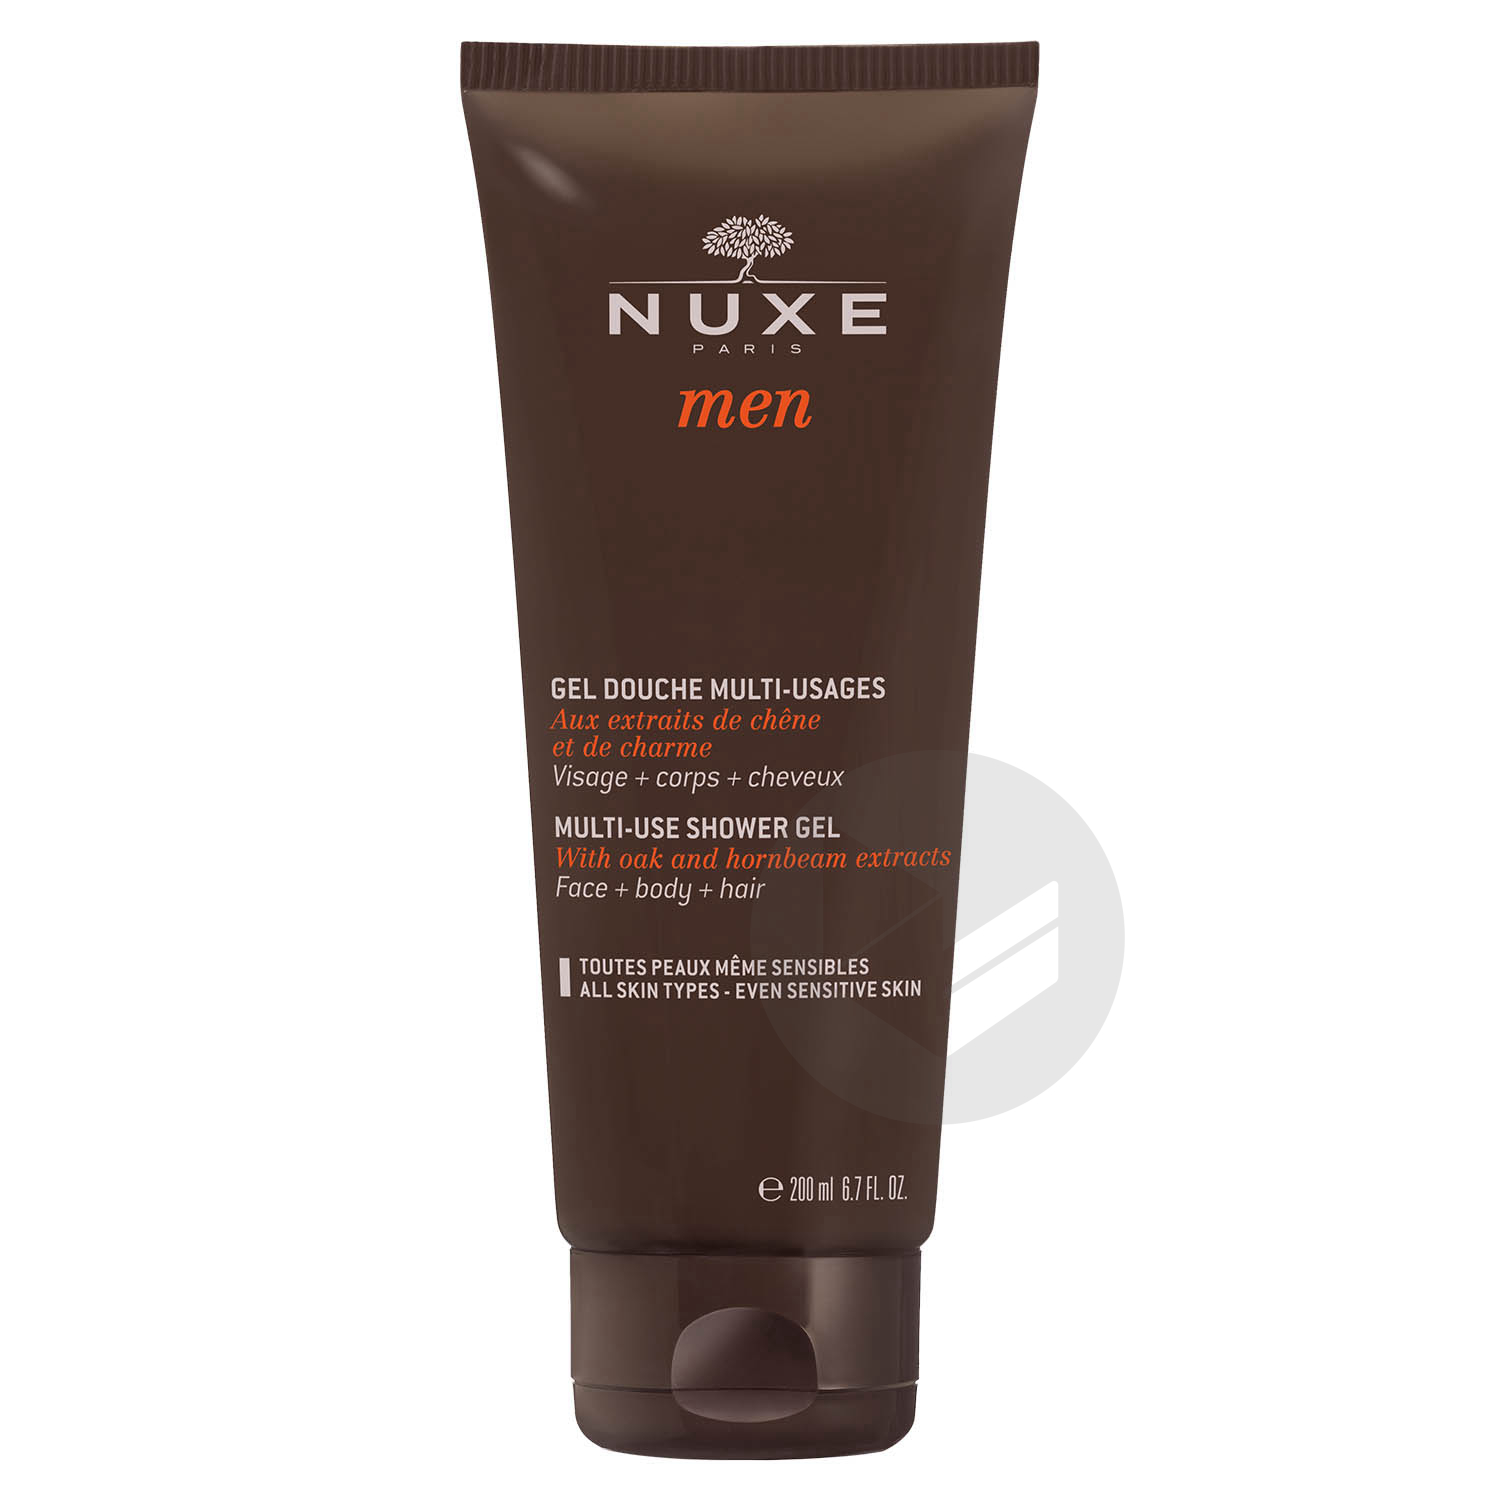 Gel Douche Multi-Usages Nuxe Men